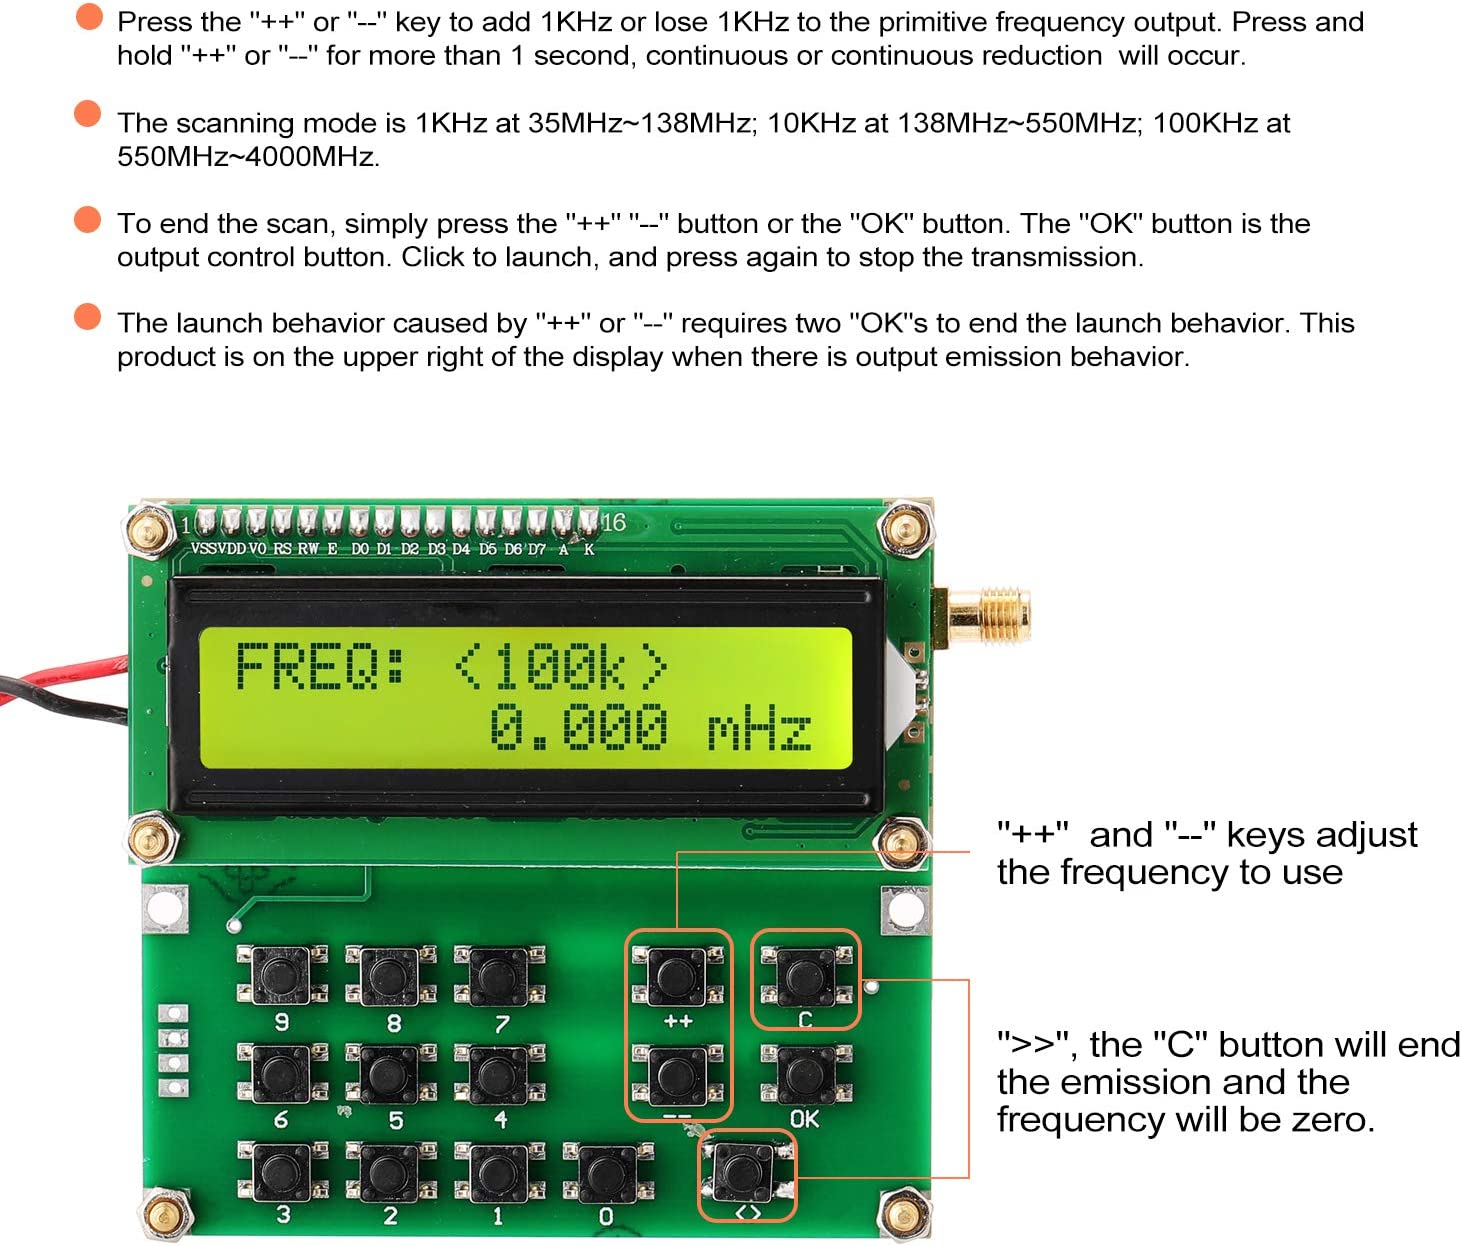 Leepesx ADF4351 Signal Source VFO Variable-Frequency Oscillator Signal Generator 35MHz to 4000MHz Digital LCD Display